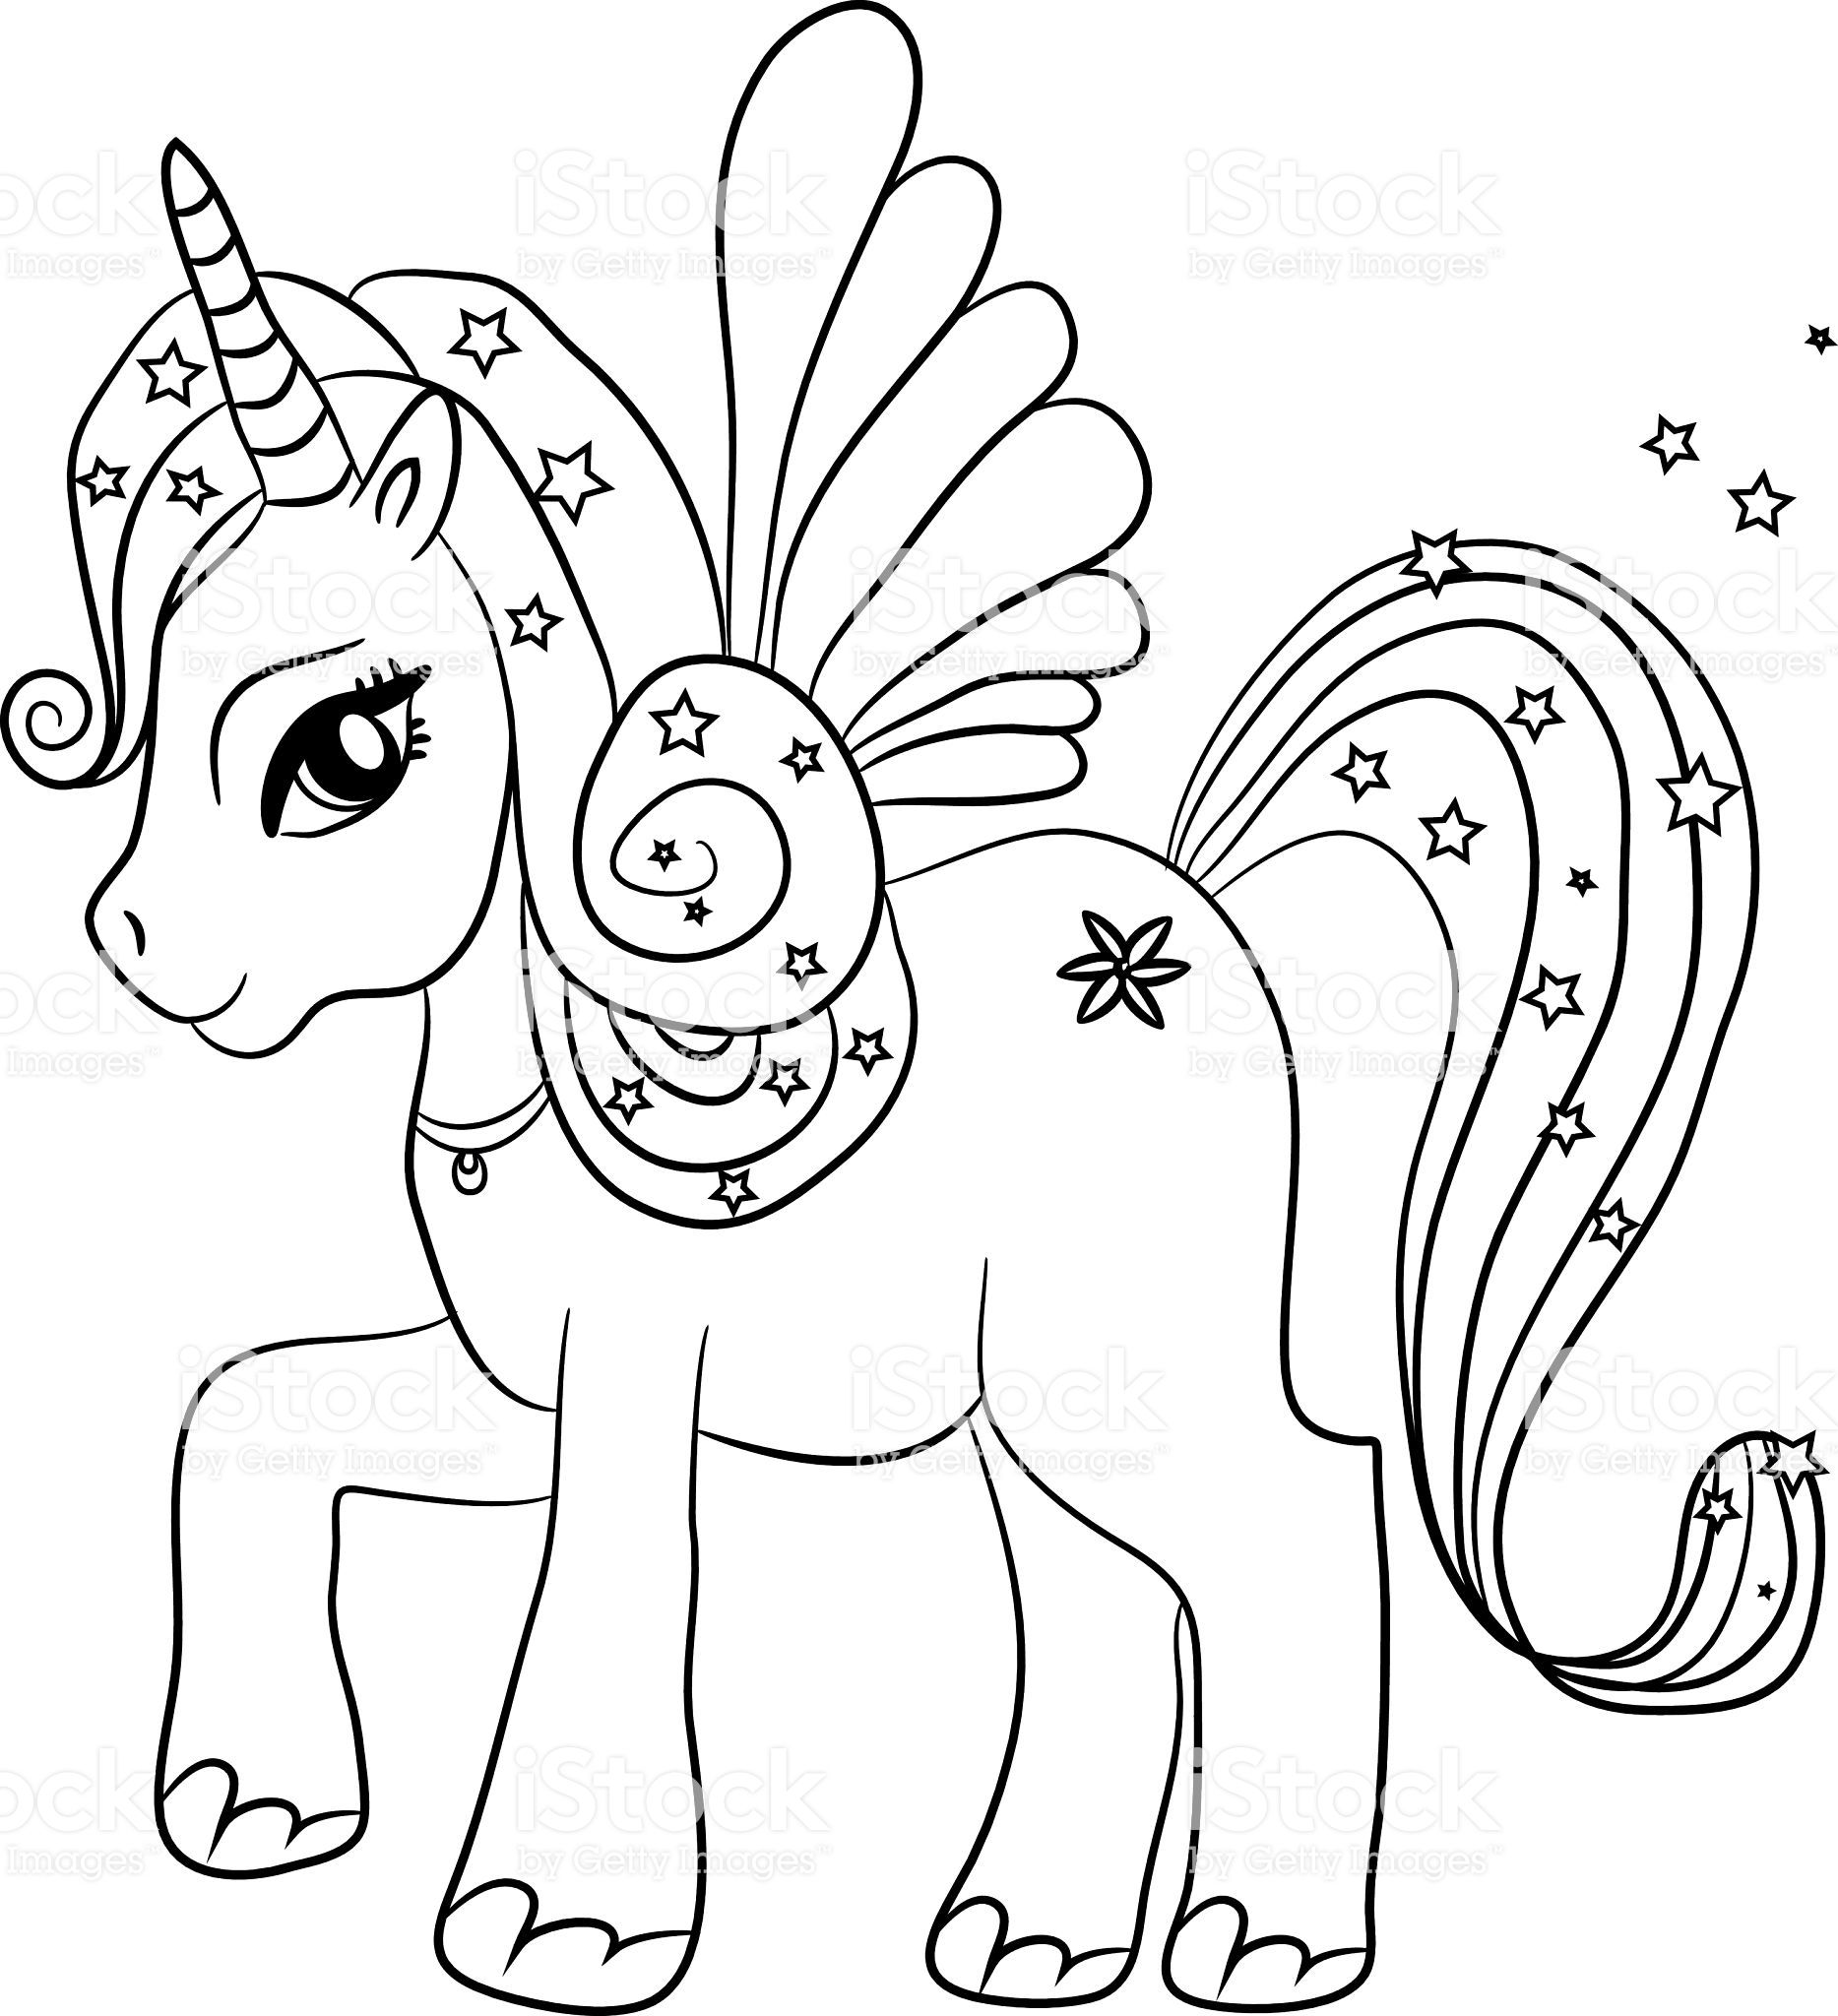 - Black And White Coloring Sheet Emoji Coloring Pages, Unicorn